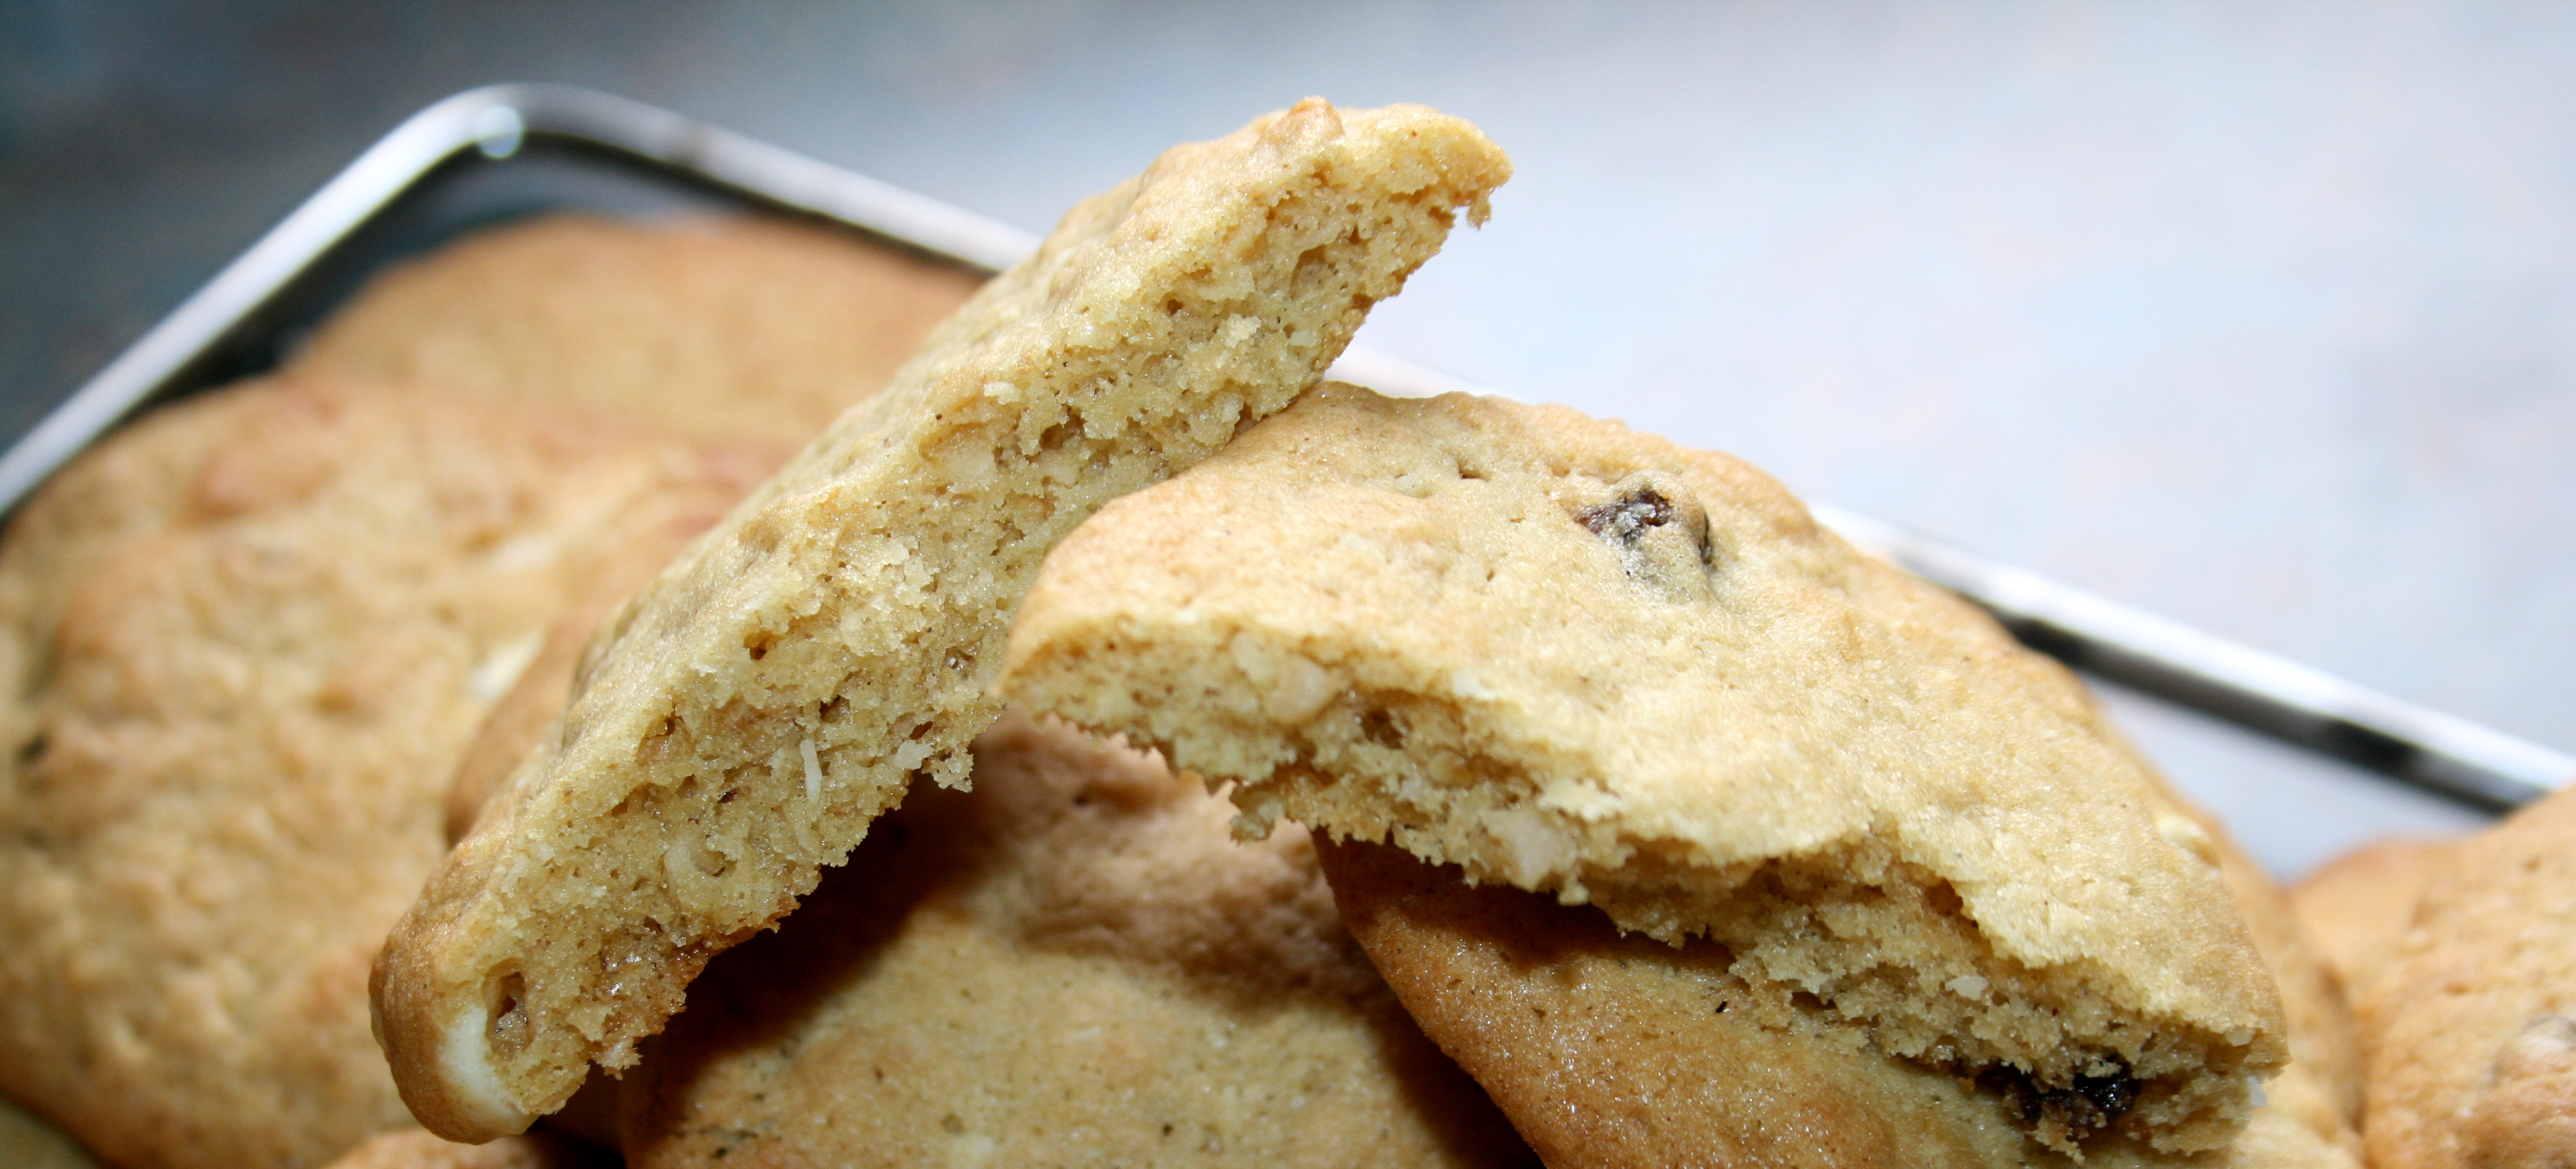 Cinnamon White Chocolate Oat Cookie Recipe